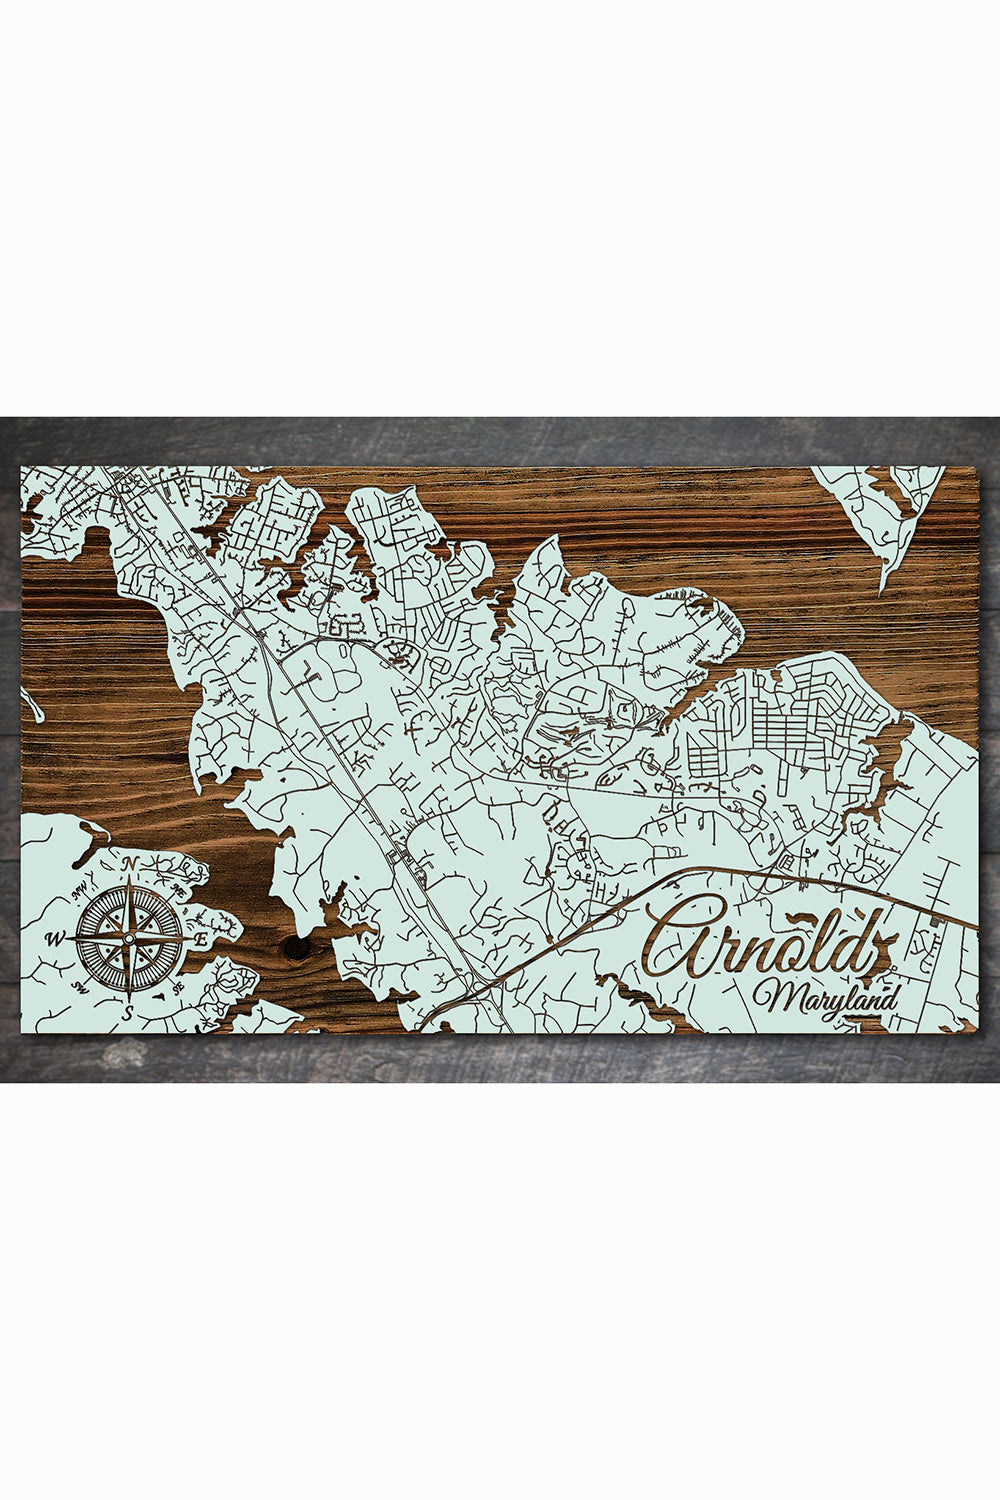 FP Wooden Map - Arnold, Maryland (Seaglass)